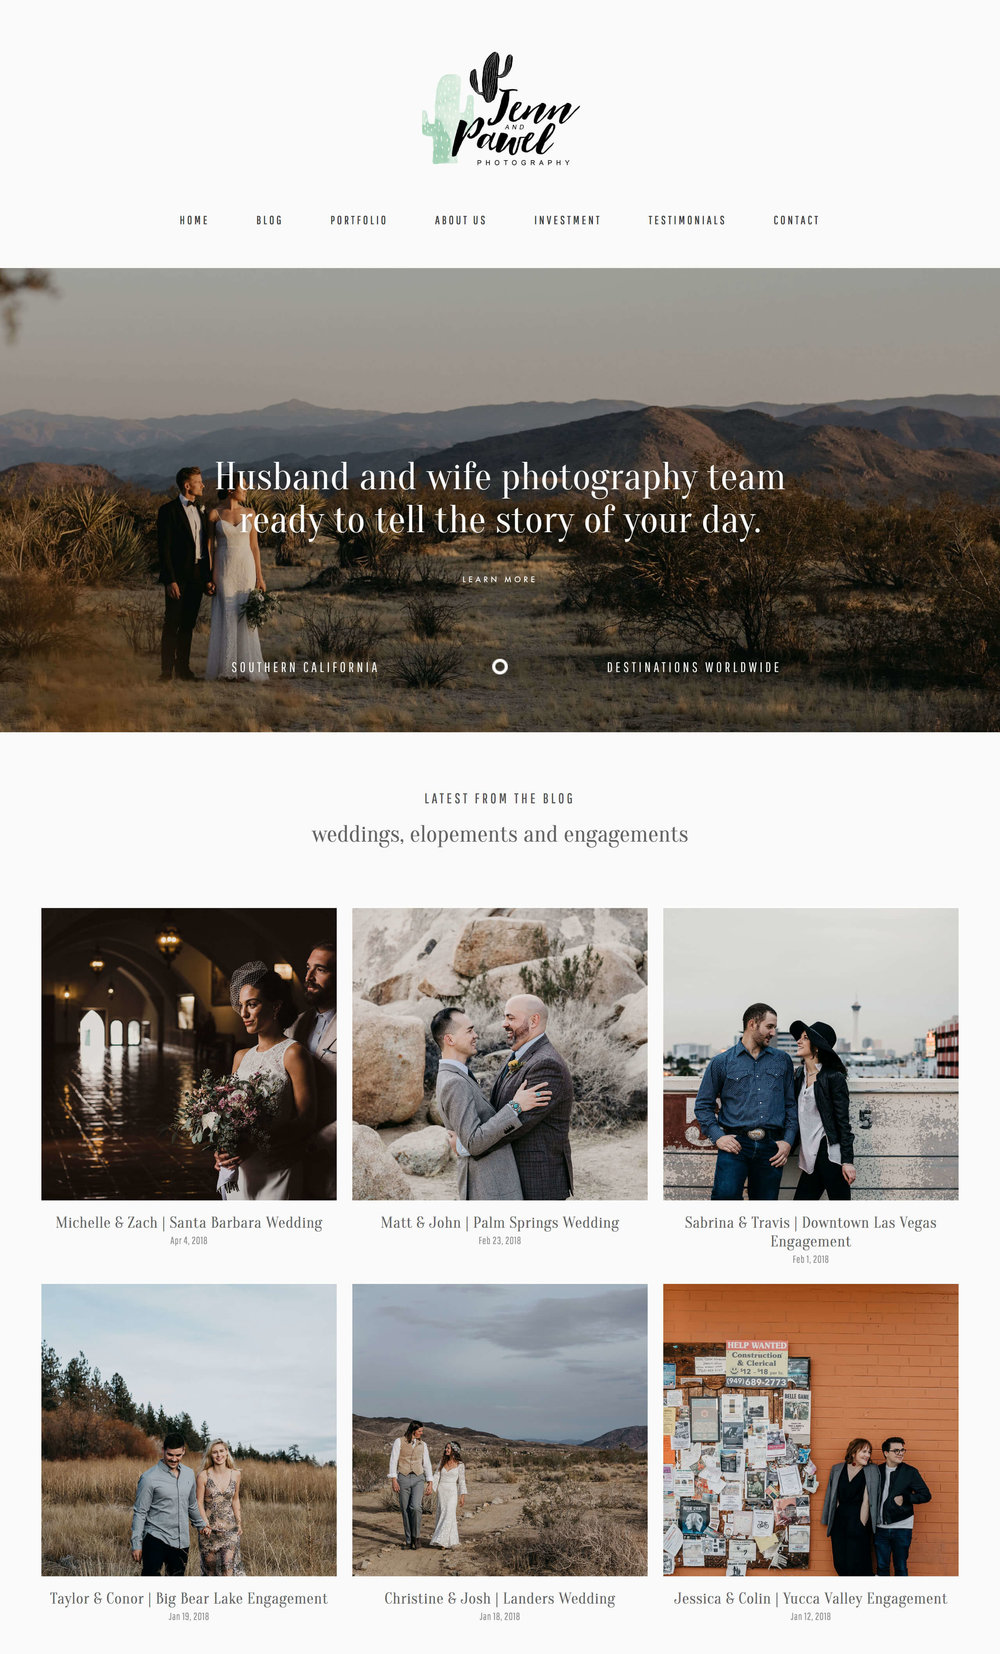 Jenna and Pawel Photography site built with Minima design kit for Squarespace sites. Modern designs for Creative Businesses on Squarespace.